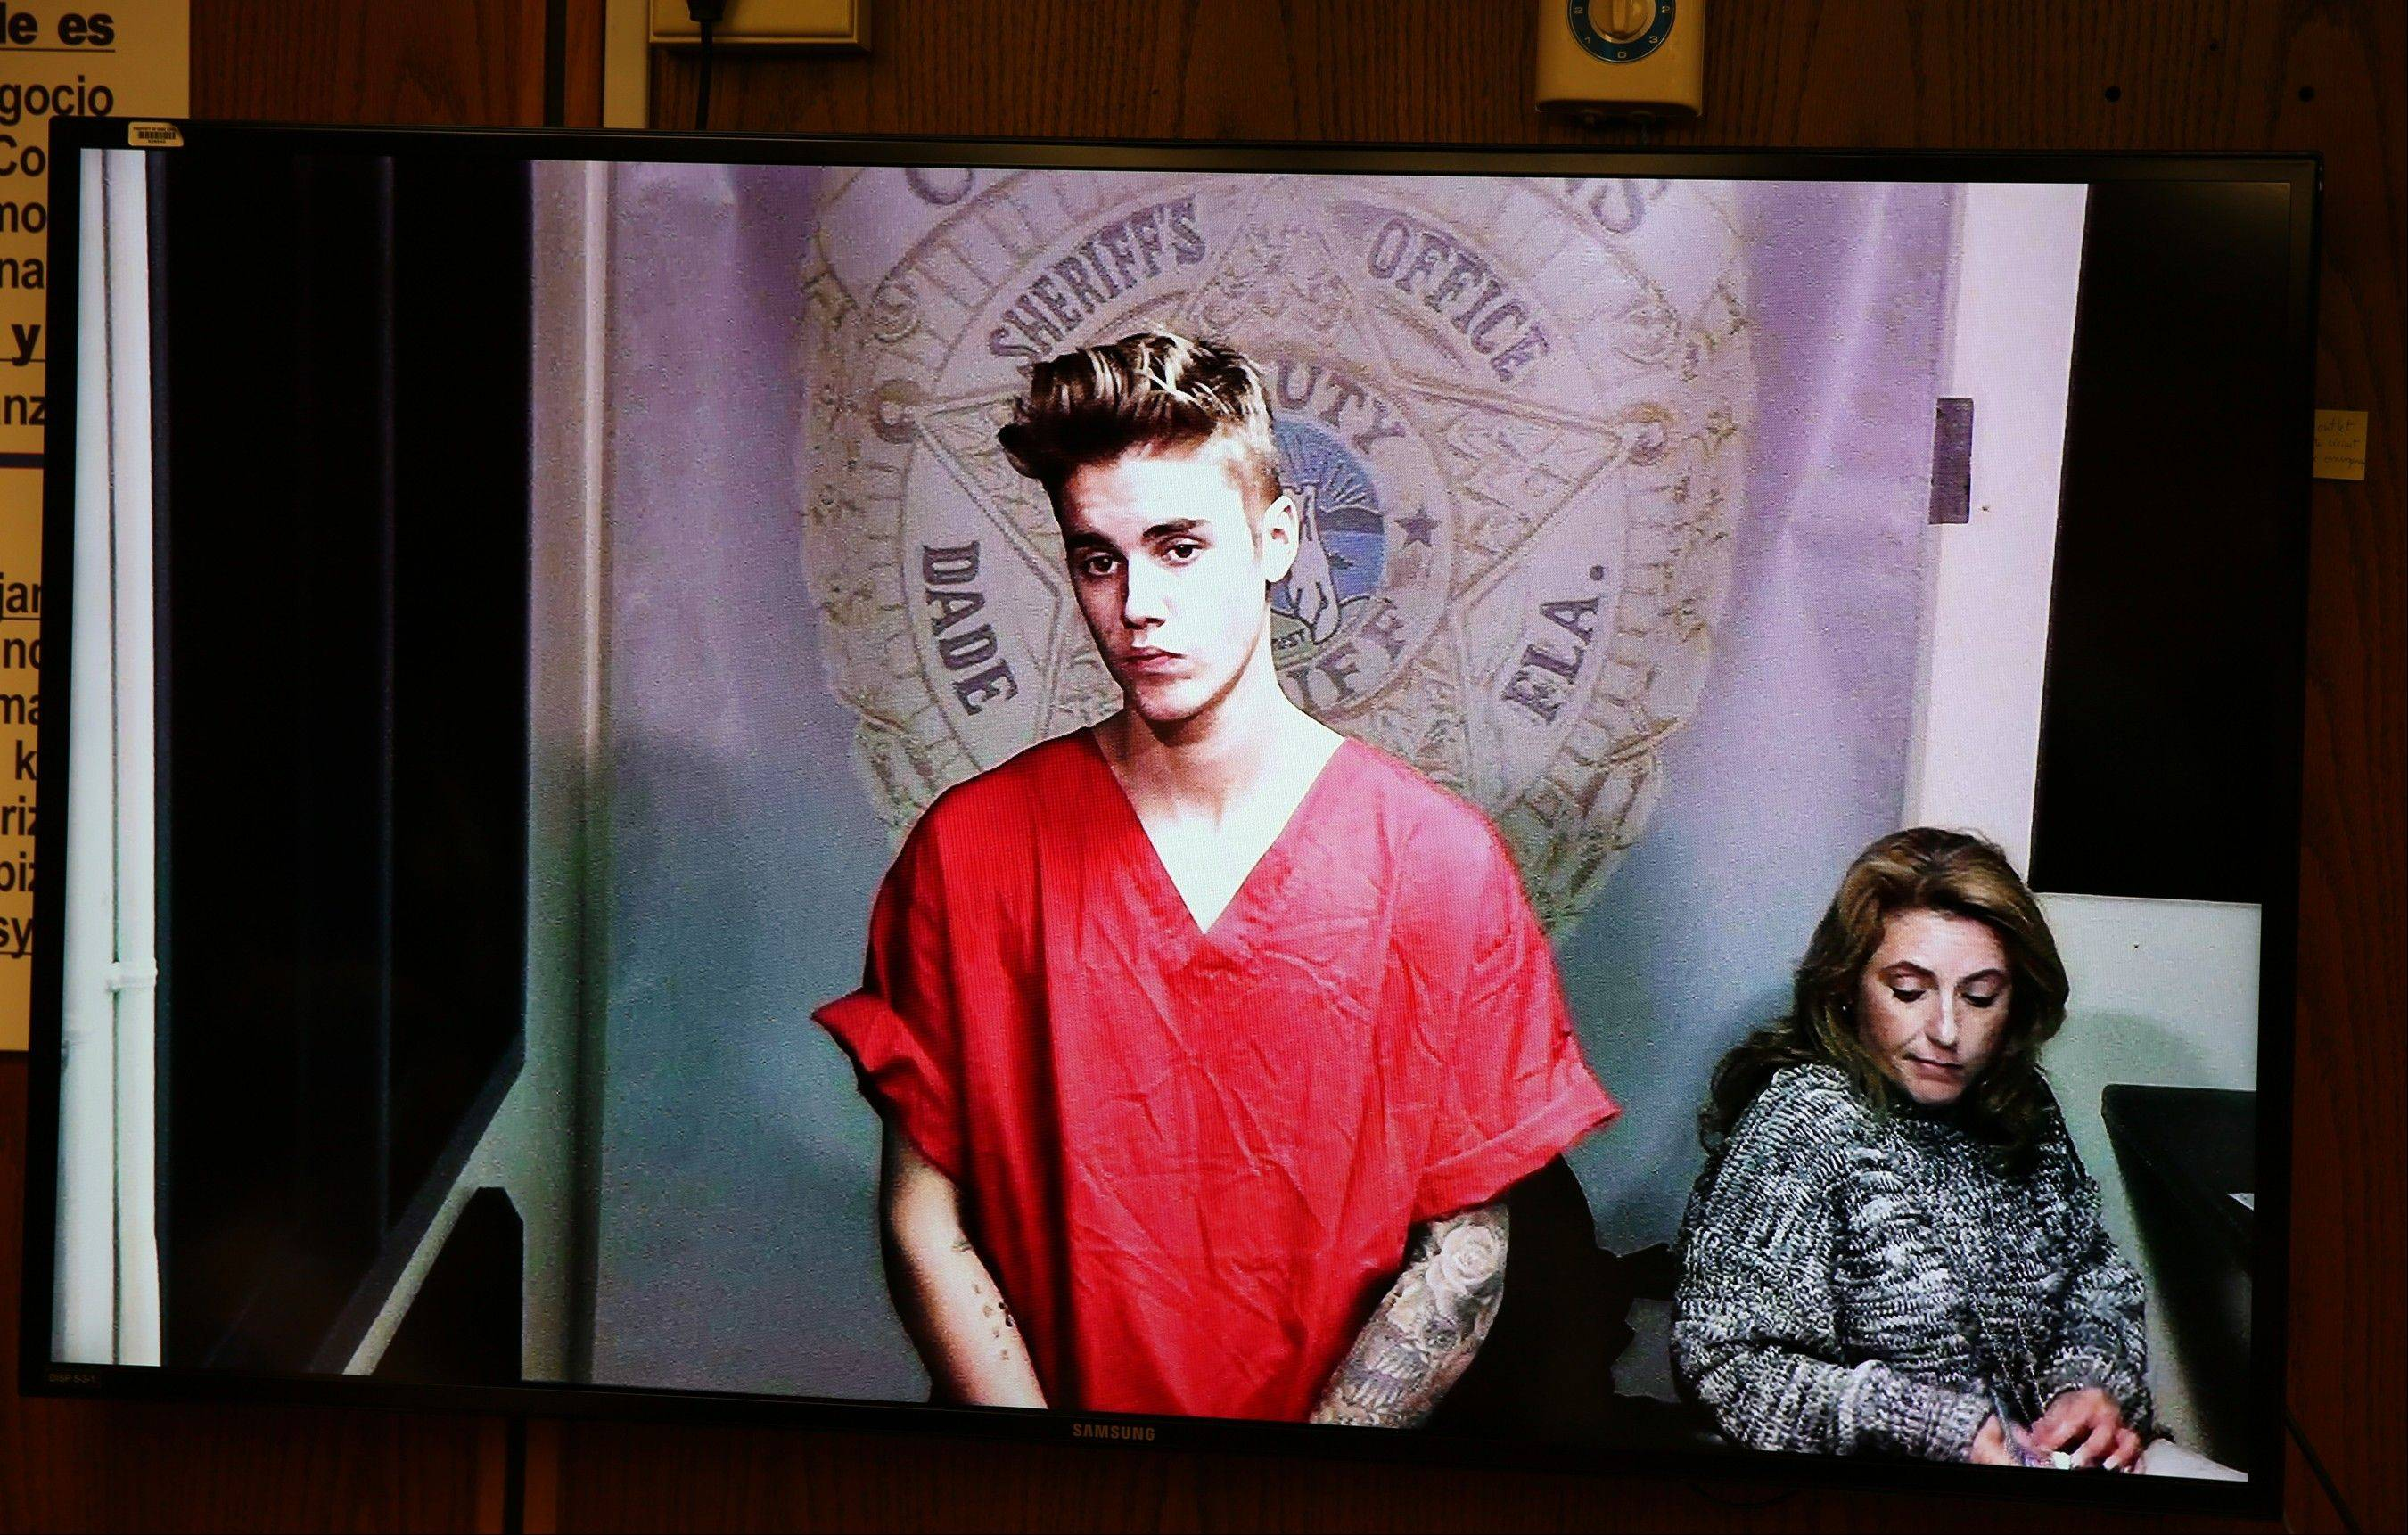 Justin Bieber appears in court via video feed Thursday in Miami. Bieber was released from jail Thursday following his arrest on charges of driving under the influence, driving with an expired license and resisting arrest. Police say they stopped the 19-year-old pop star while he was drag-racing down a Miami Beach street before dawn.